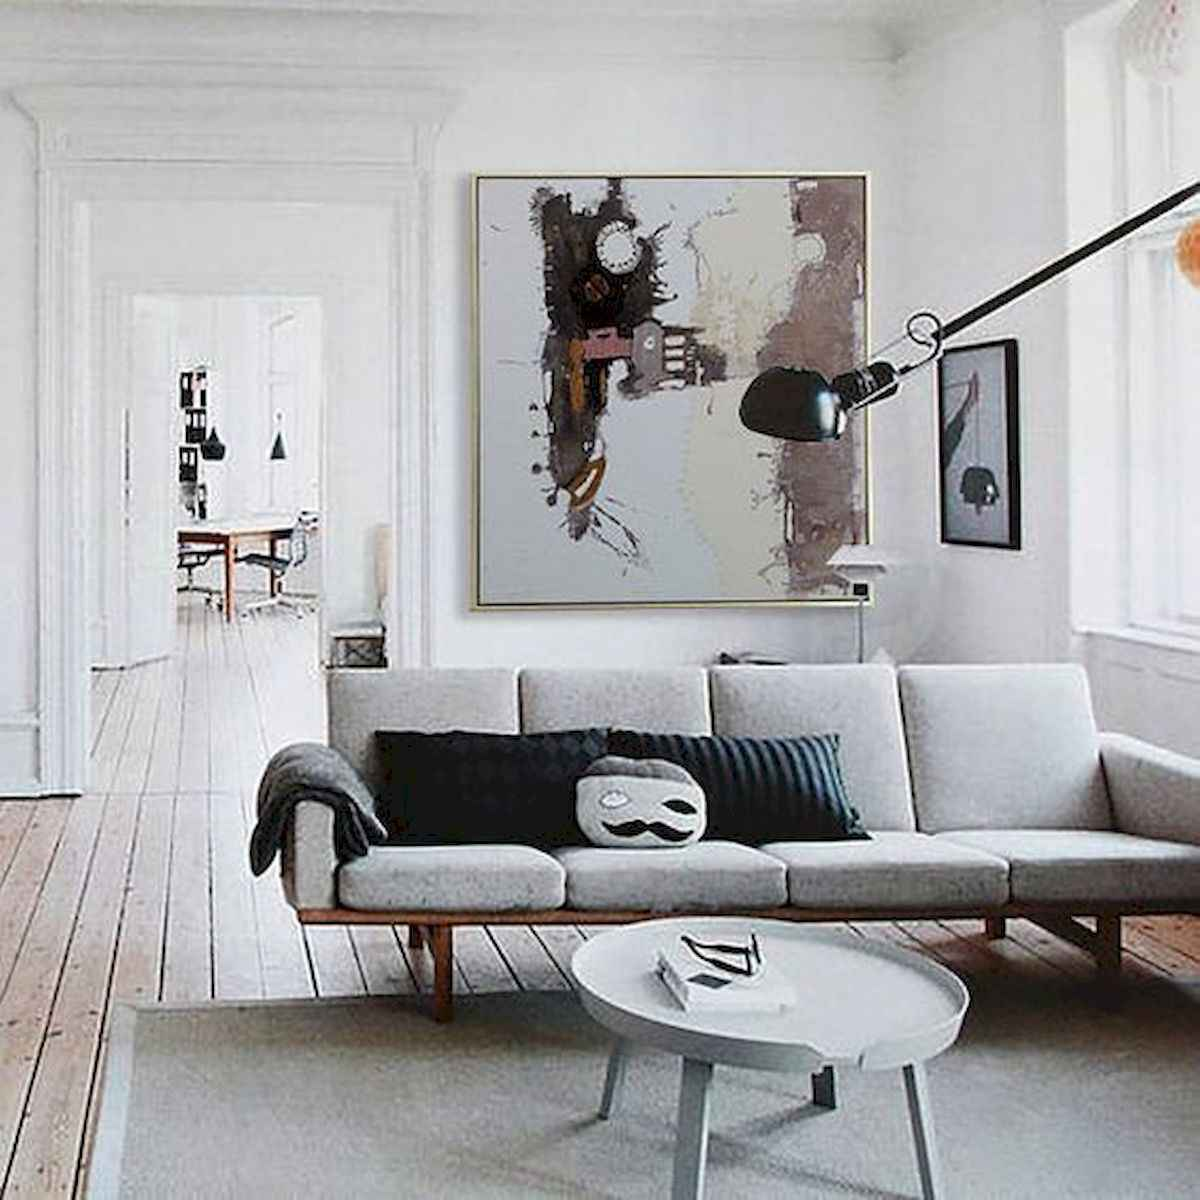 70 Stunning Grey White Black Living Room Decor Ideas And Remodel (49)